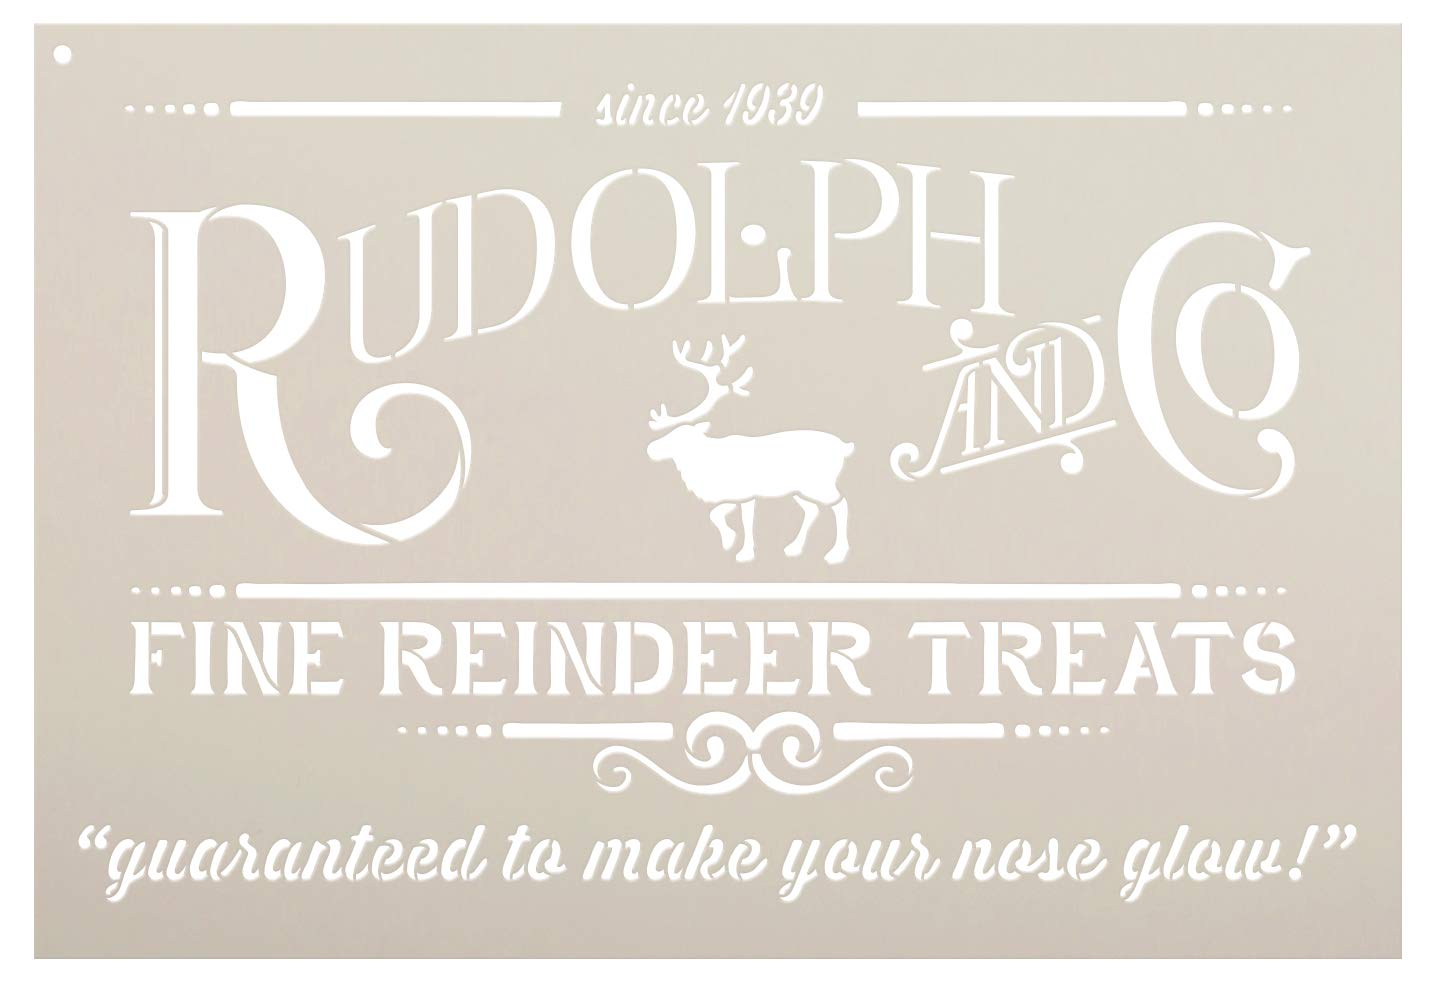 Rudolph and Co. Stencil by StudioR12 | Reindeer Treats Christmas Word Art - Reusable Mylar Template | Painting, Chalk | Use for Crafting DIY Christmas Signs for Holiday Decor (16 x 11) Studio R 12